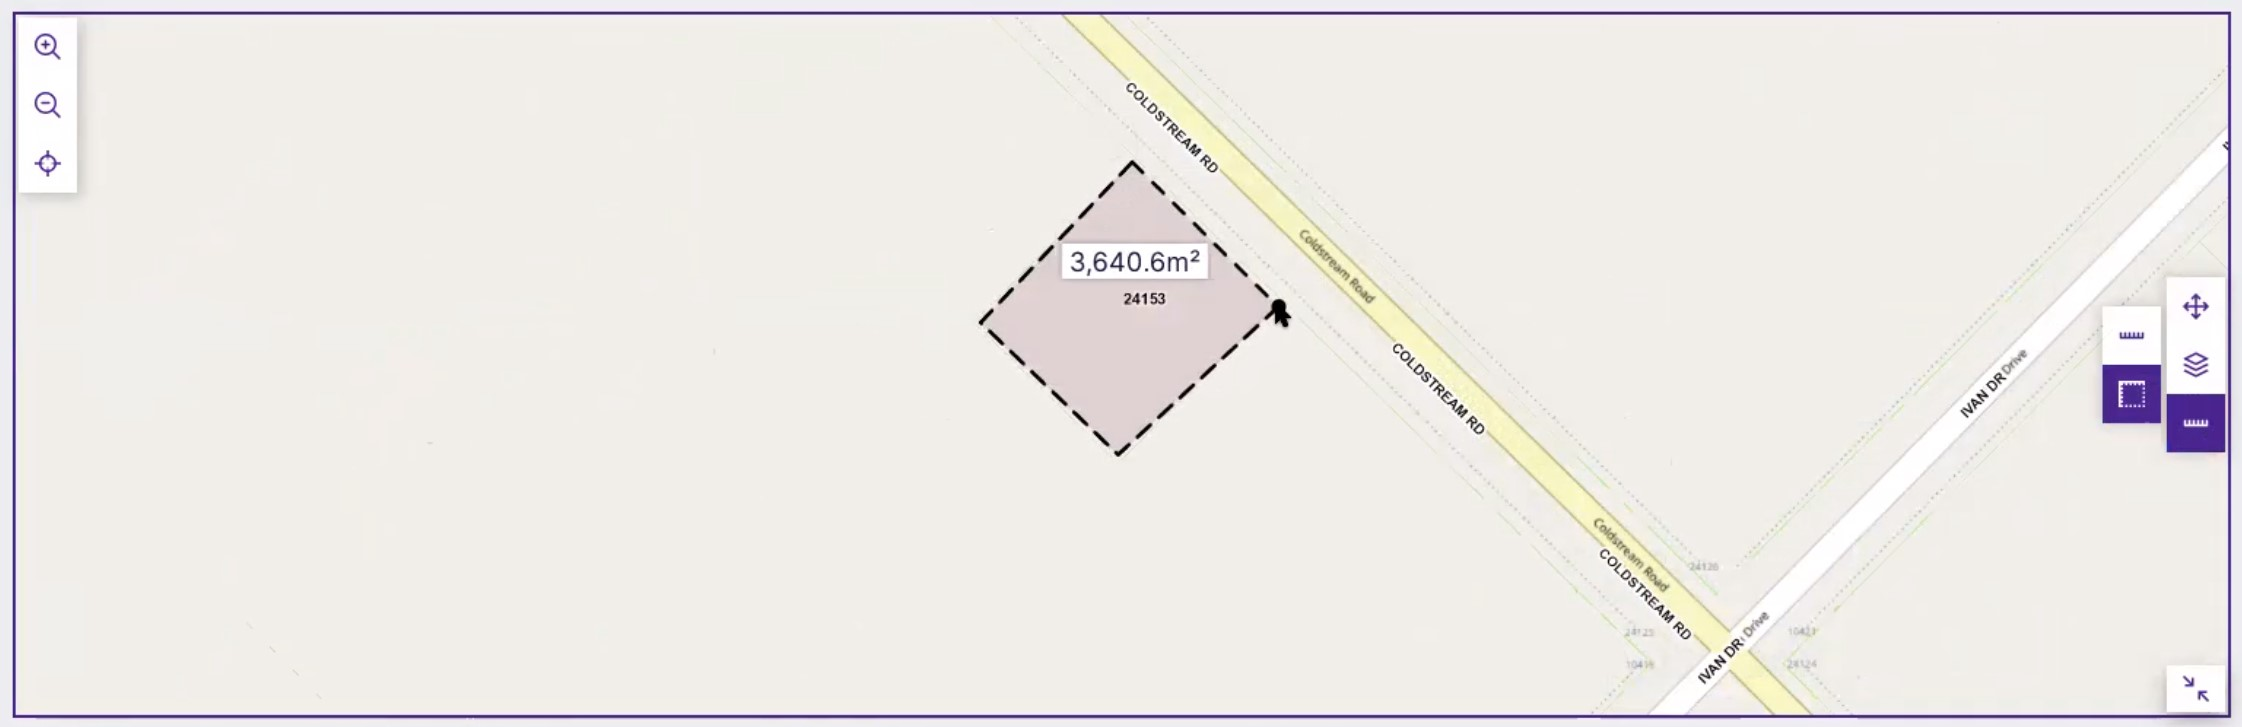 View of using a measuring tool directly on a map to draw and determine the size of a property or other areas.